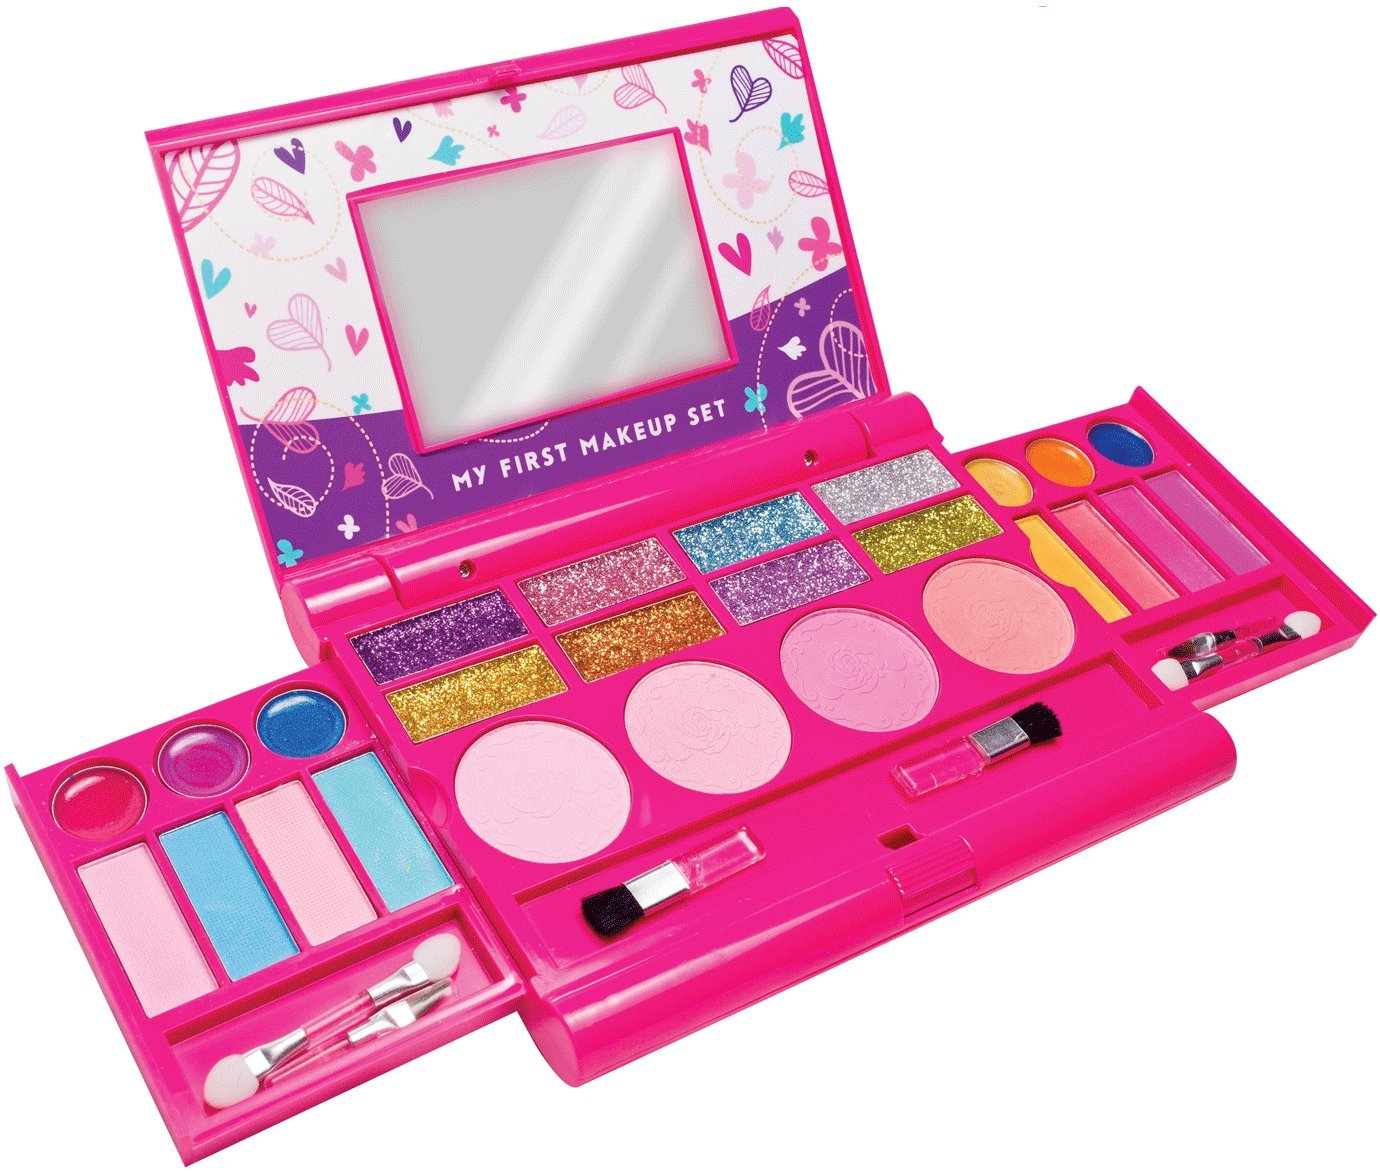 My First Makeup Set